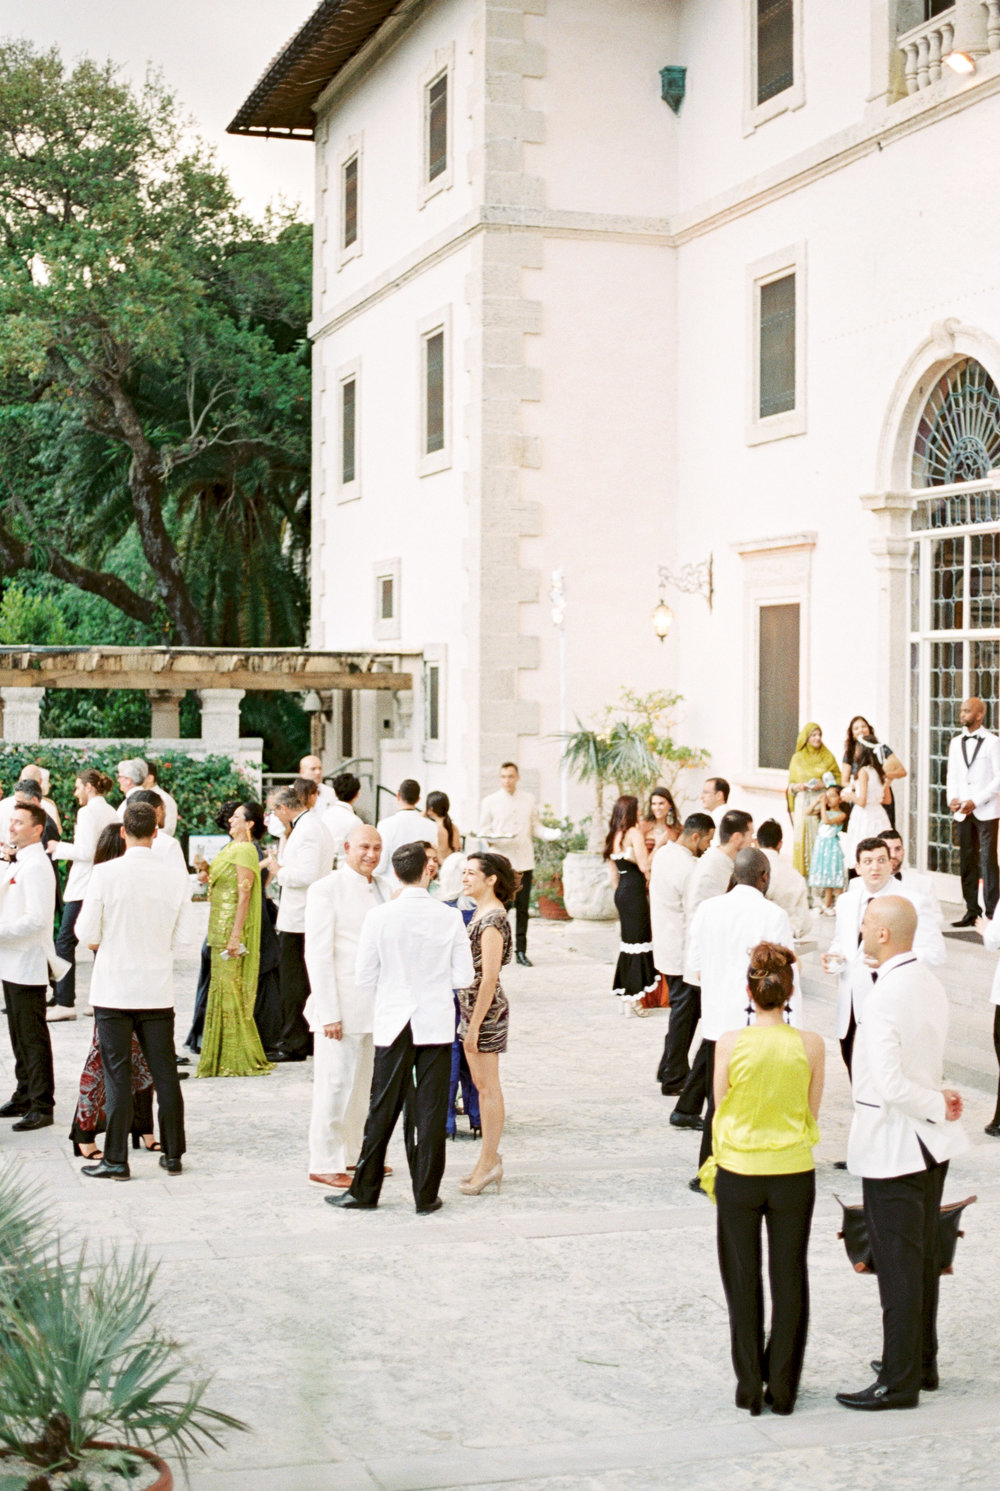 vizcaya-miami-destination-film-wedding-photographer-4446_22.jpg